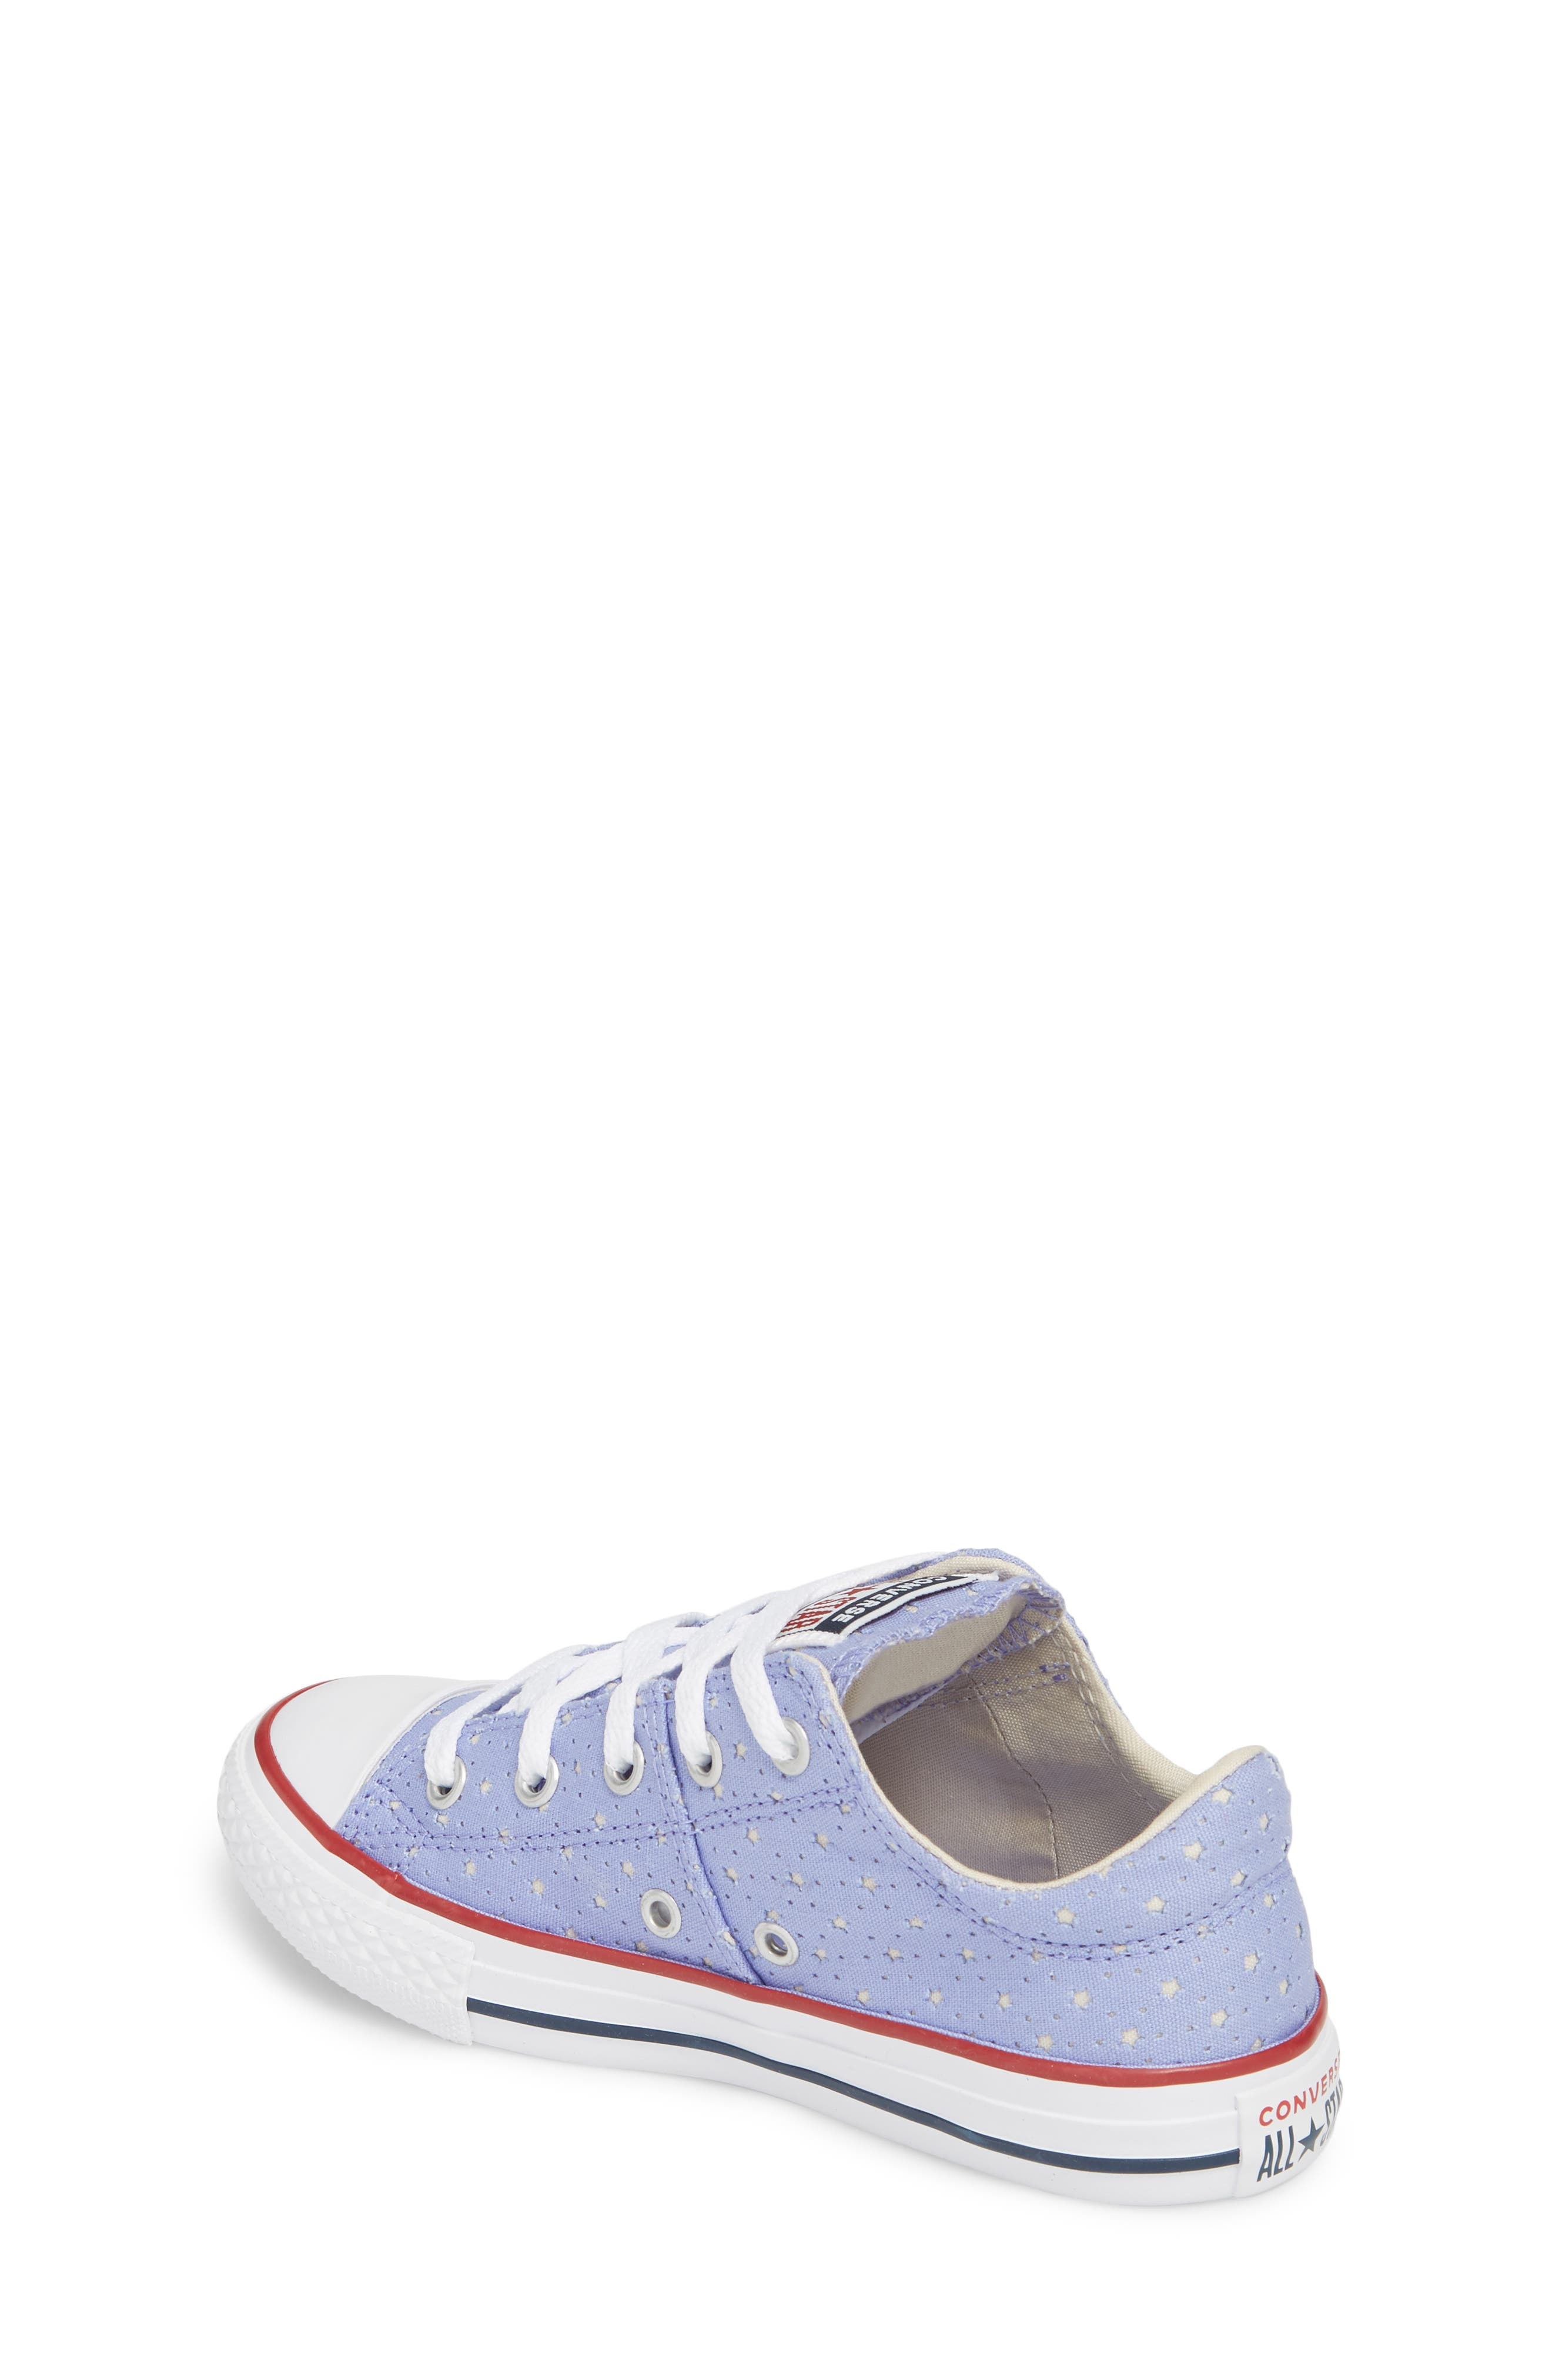 Chuck Taylor<sup>®</sup> All Star<sup>®</sup> Madison Sneaker,                             Alternate thumbnail 2, color,                             Twilight Pulse